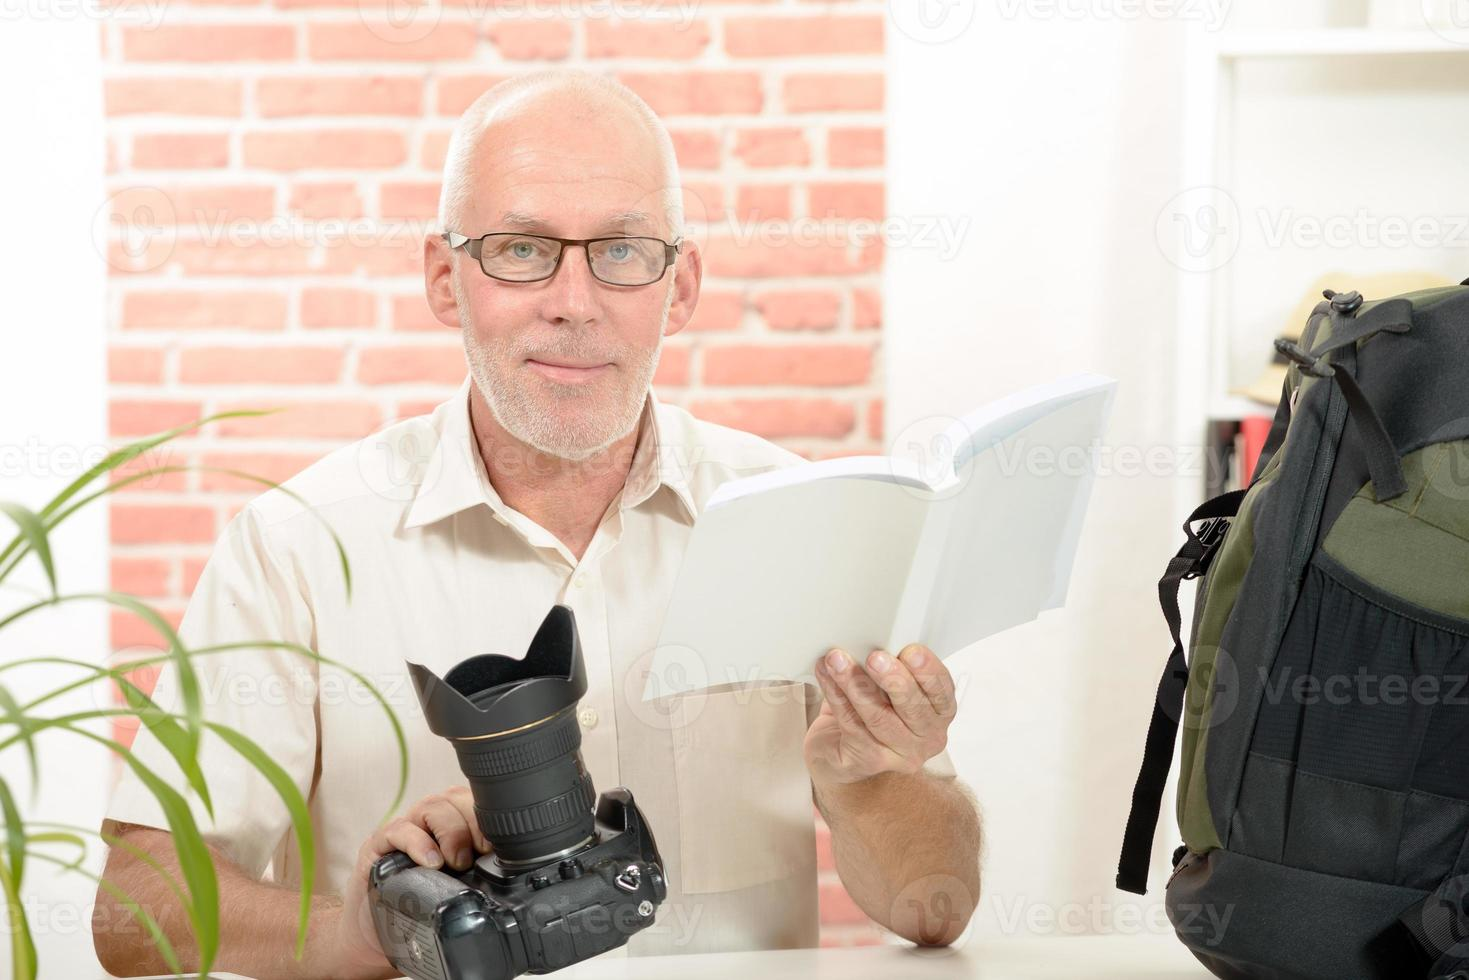 photographer with the camera and notice photo